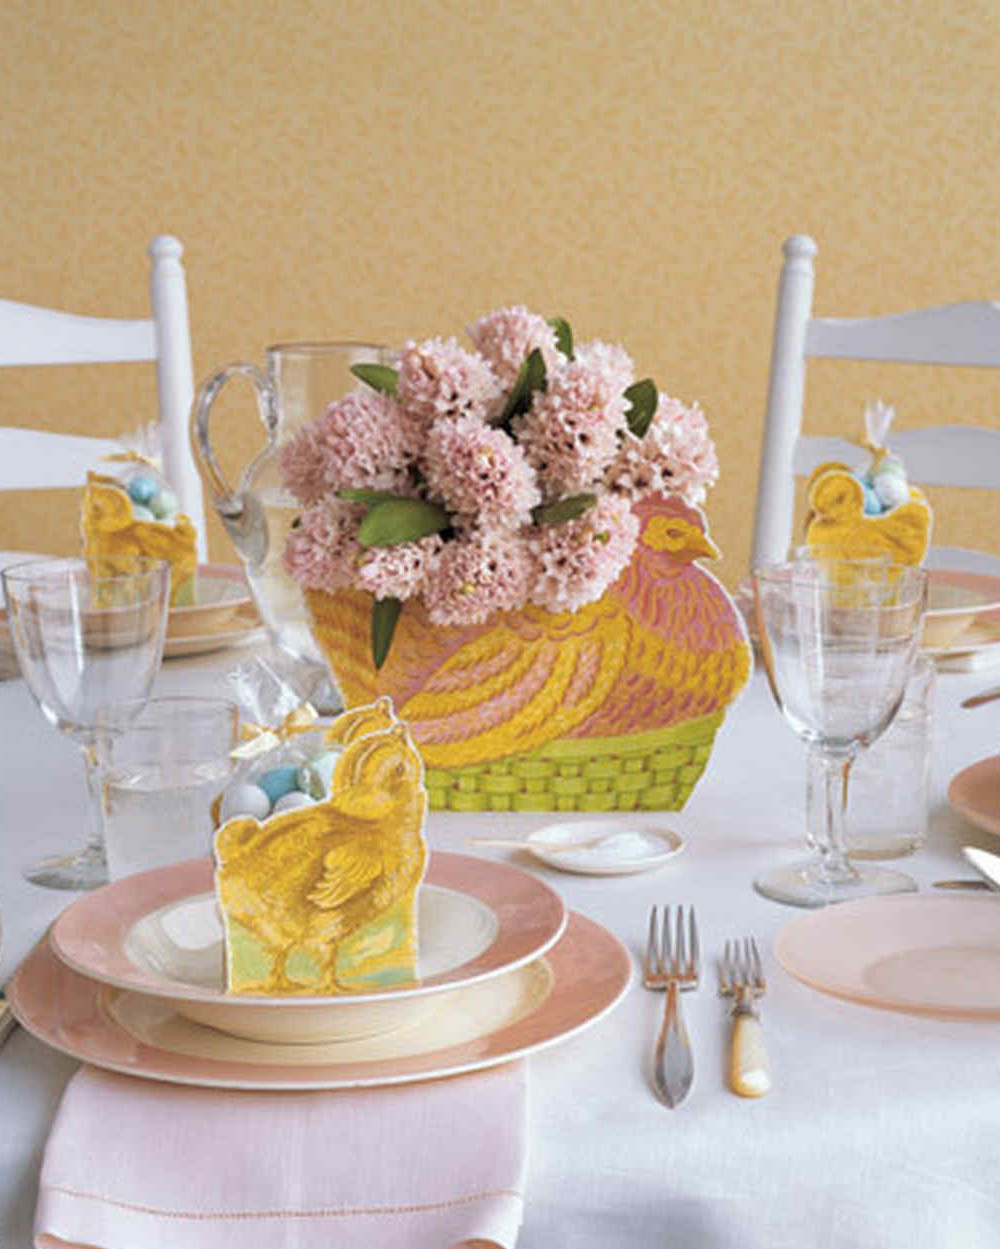 hen and chick centerpiece